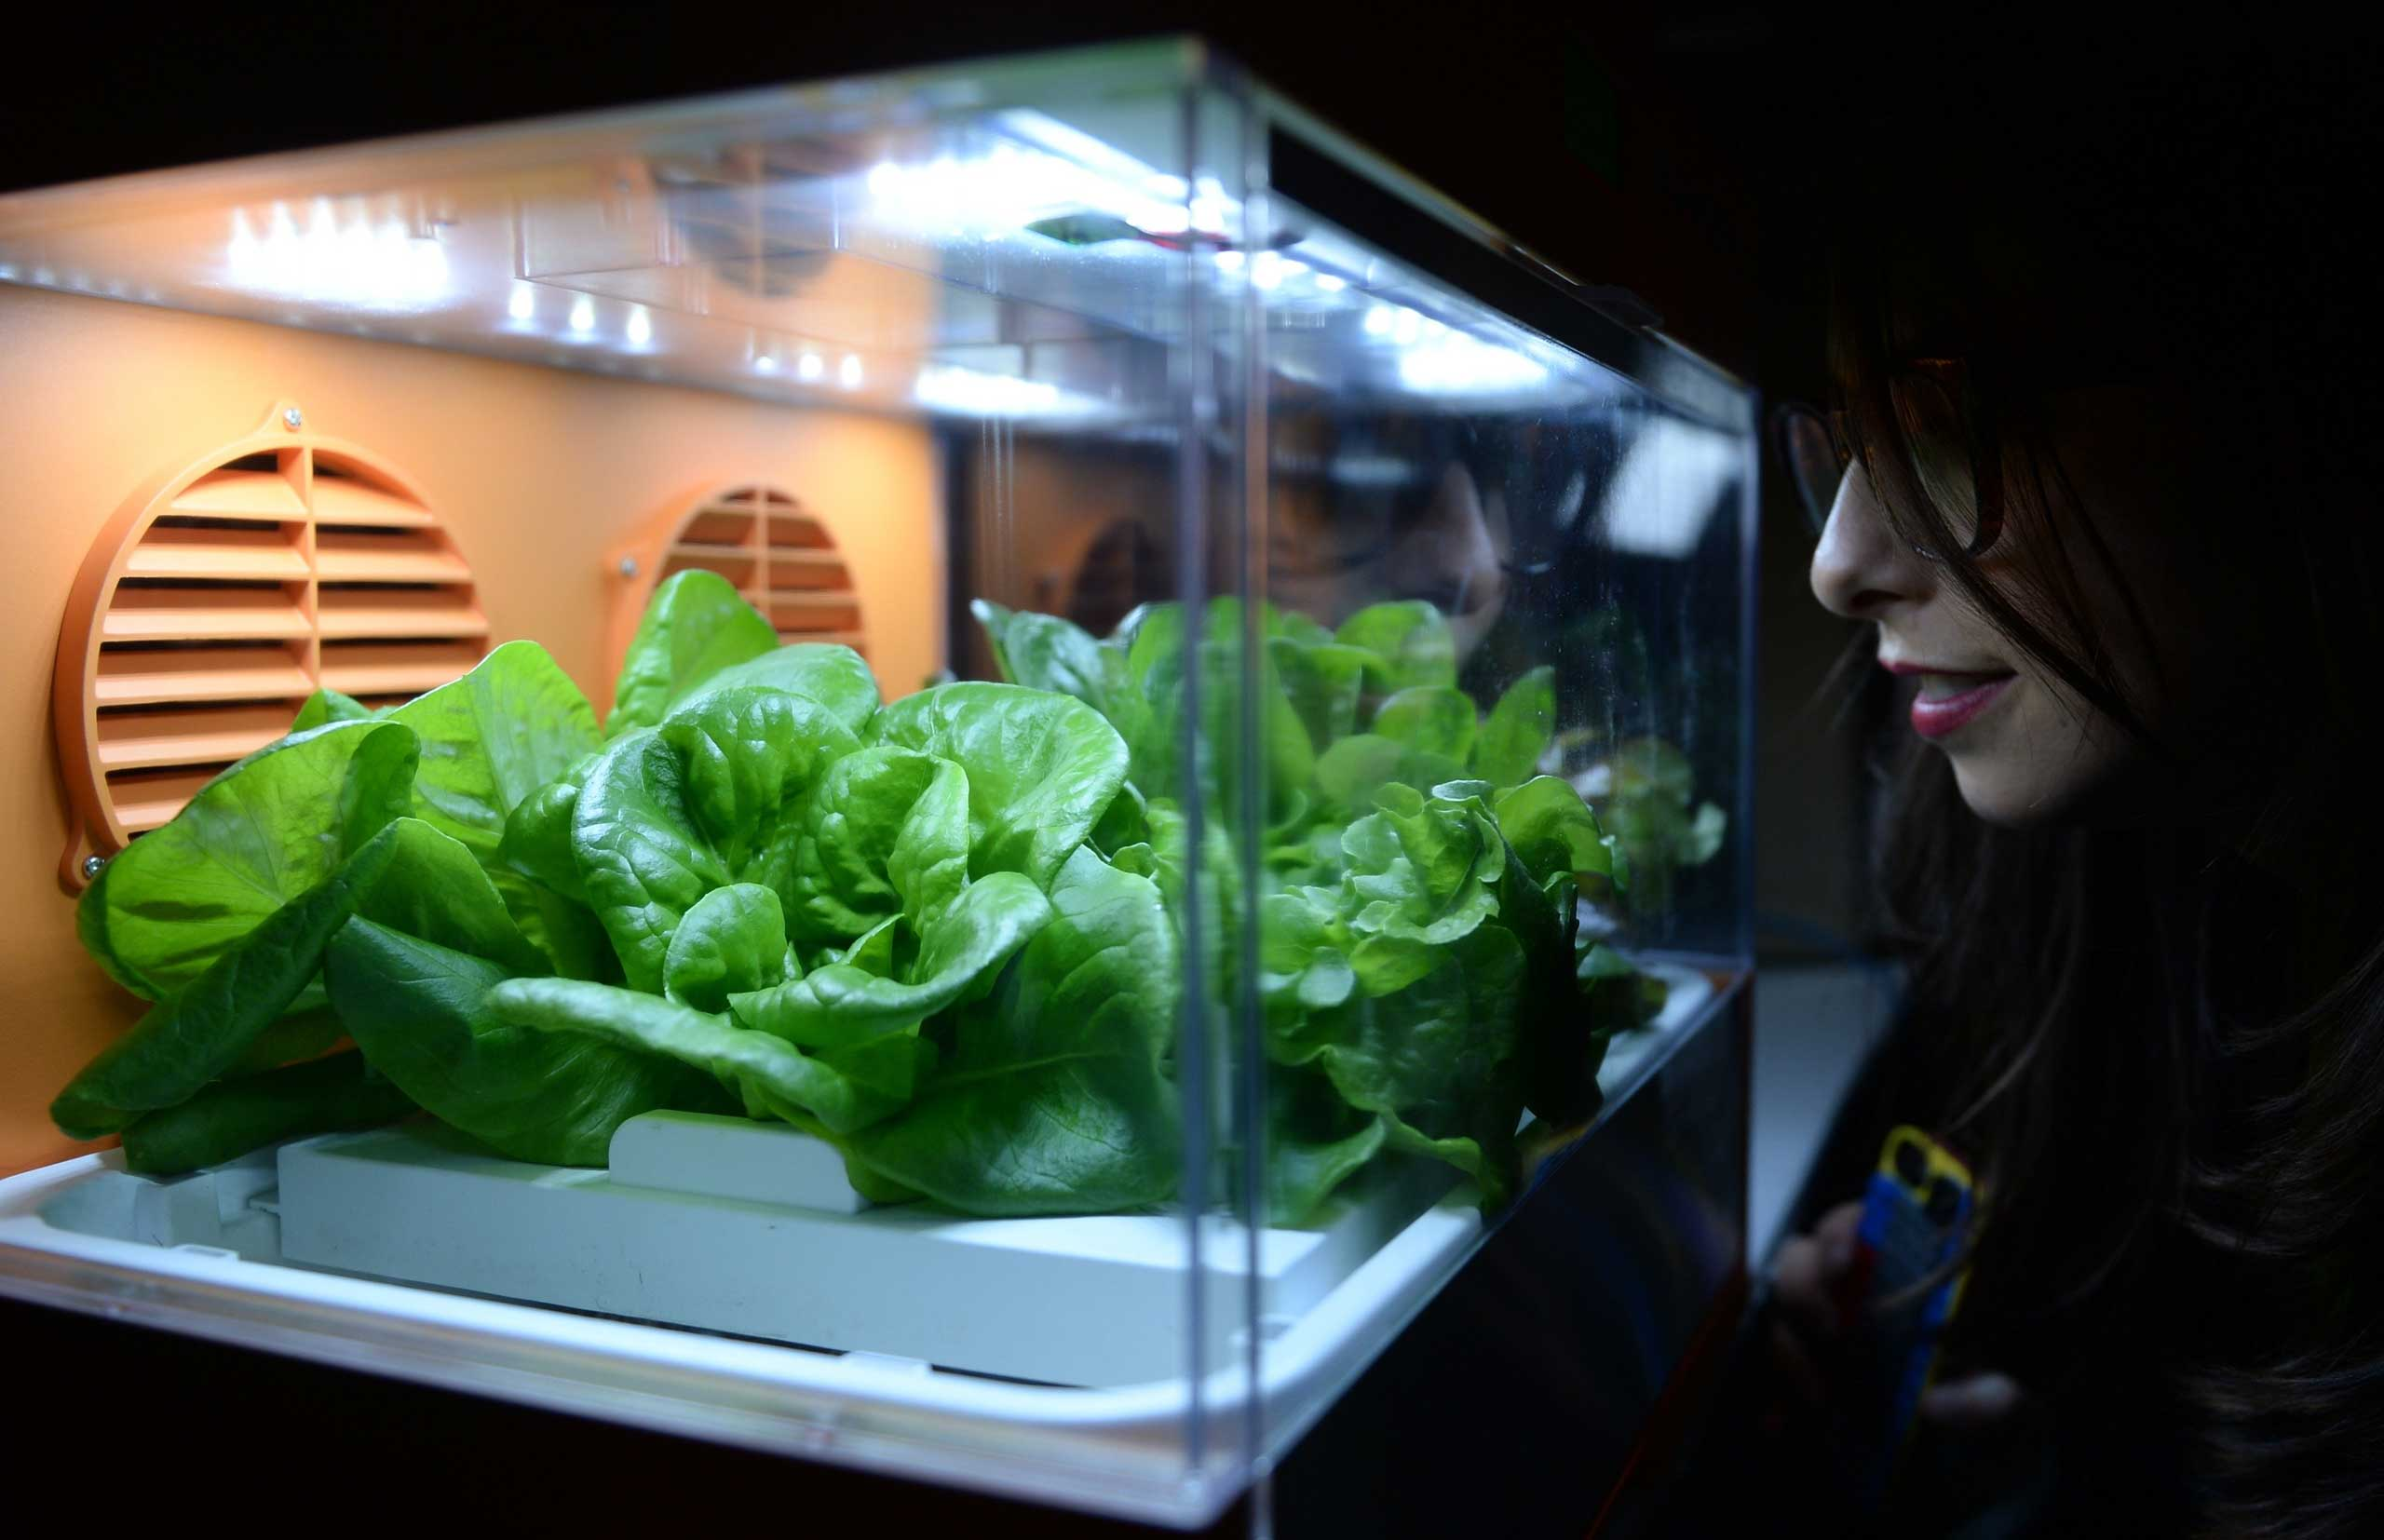 At the 'Unveiled-event' a young woman has a look at salad on Jan. 4, 2015.